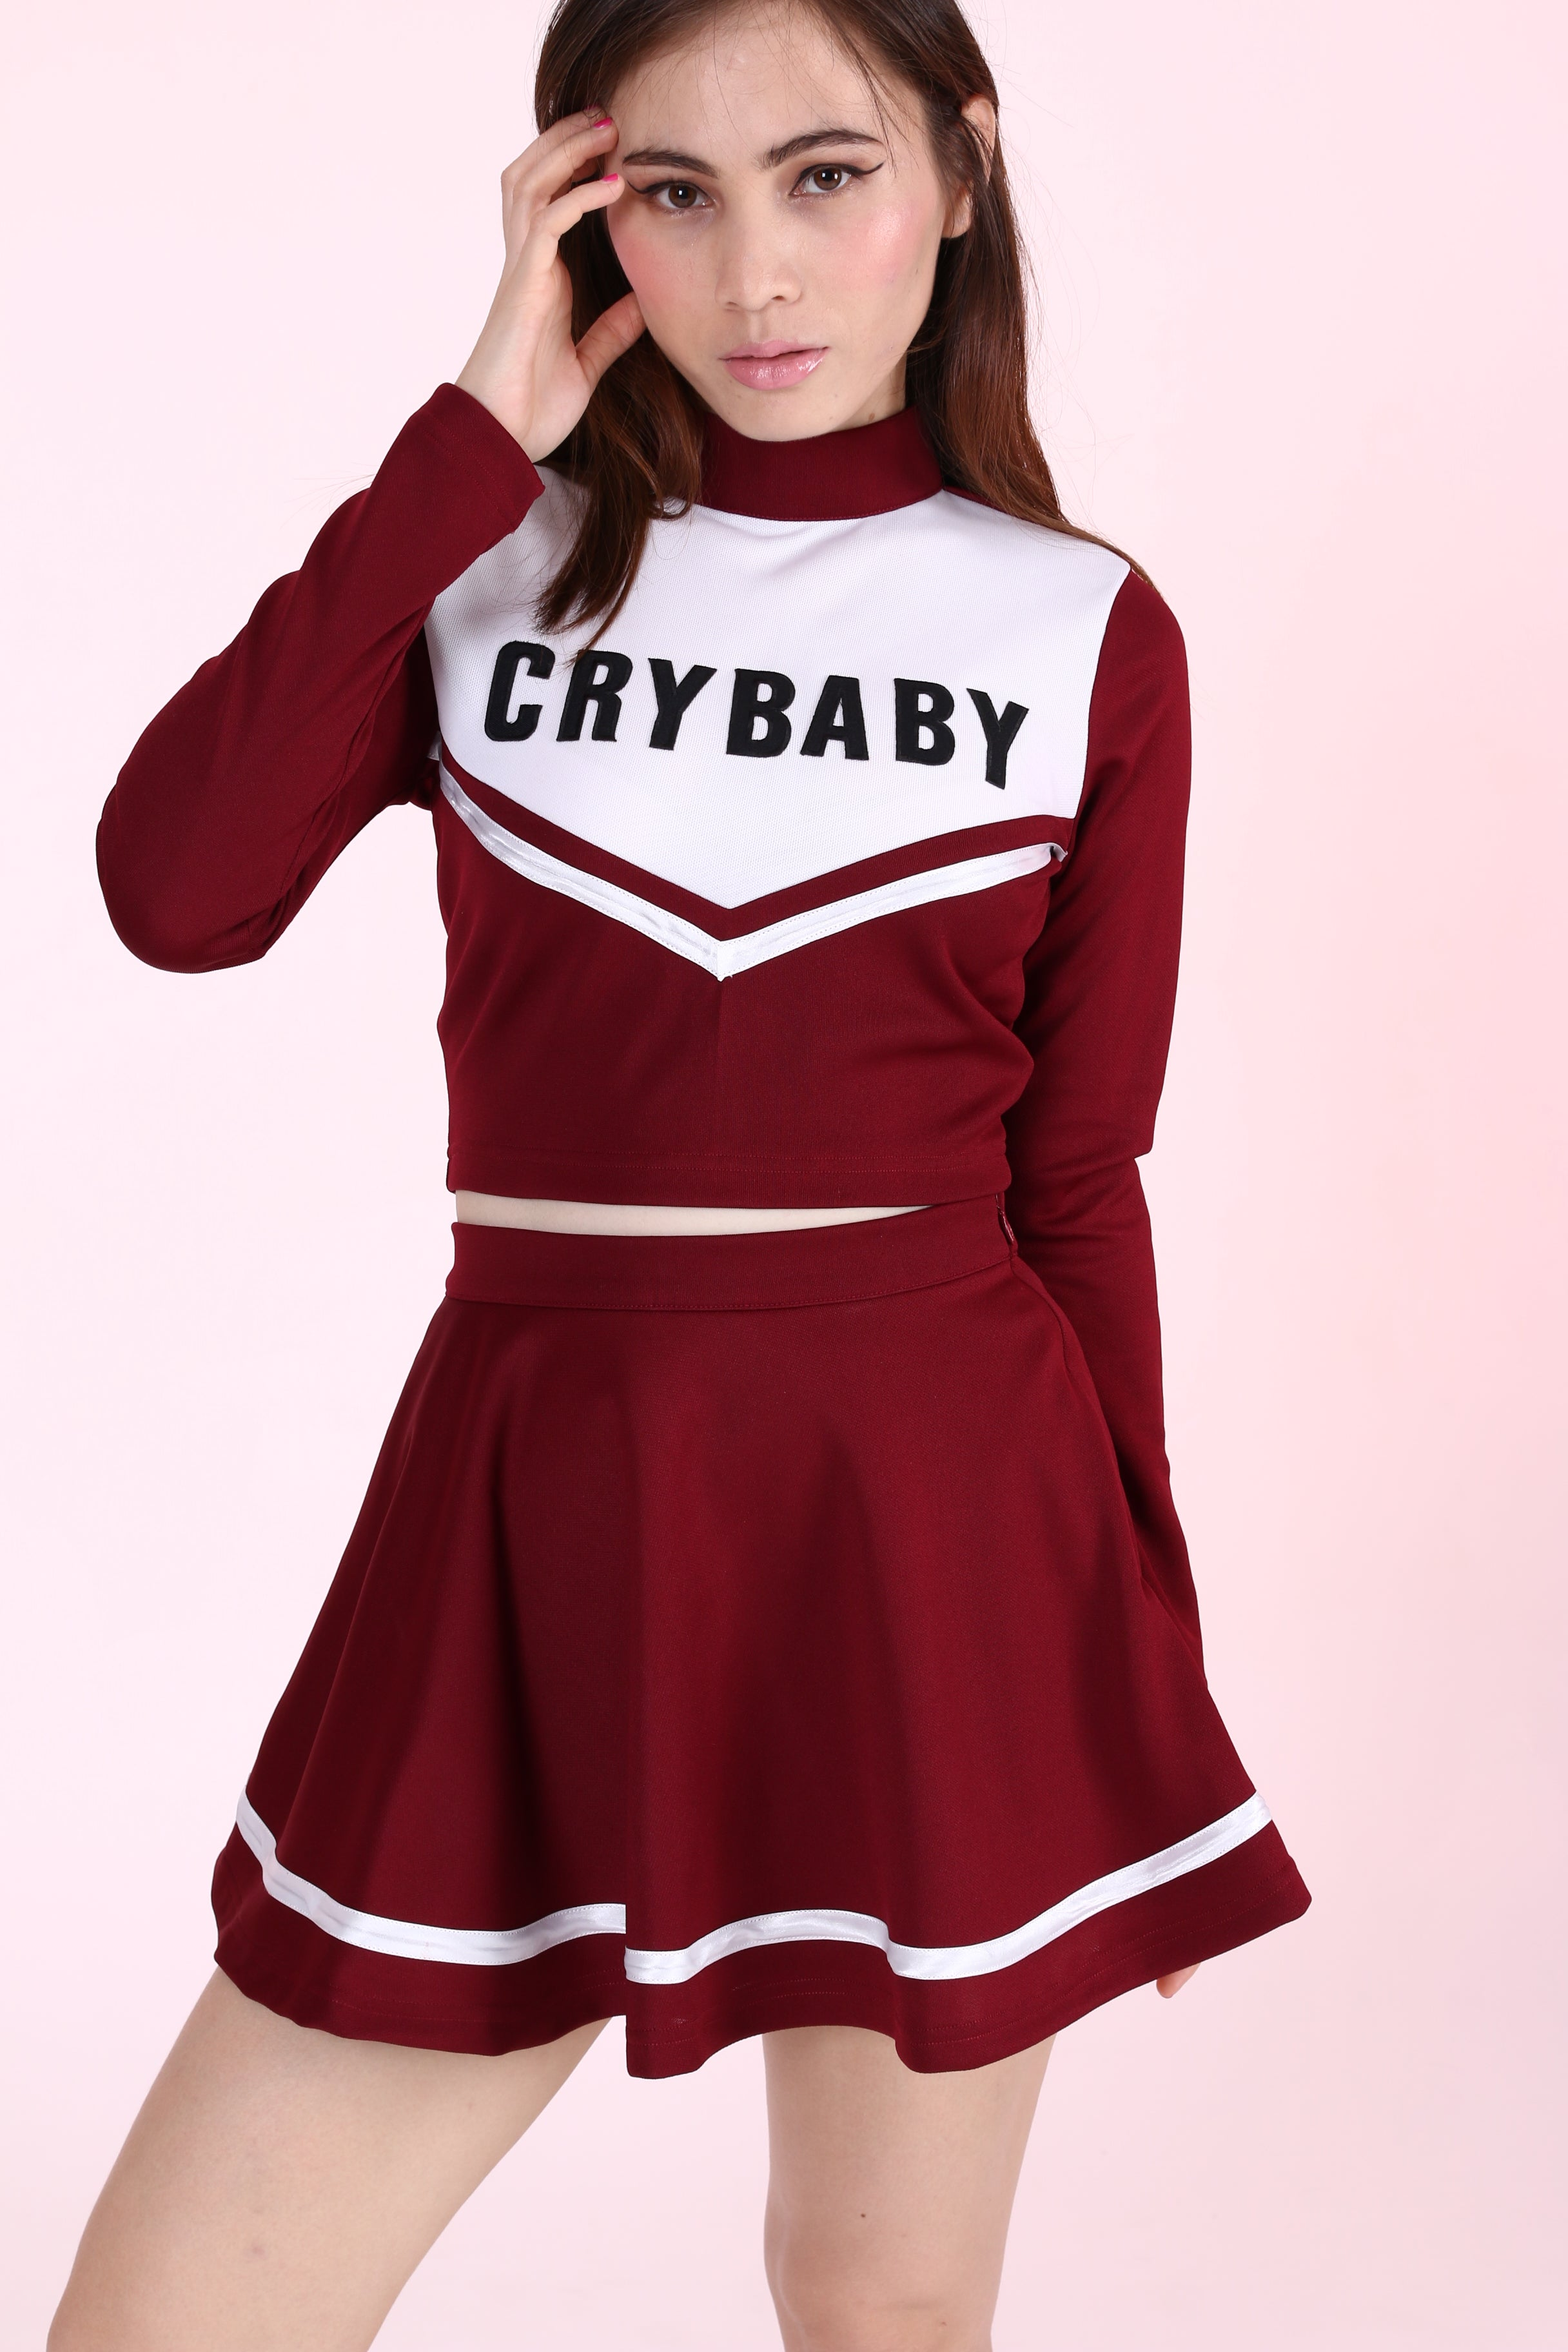 Cheerleader Outfits For Halloween